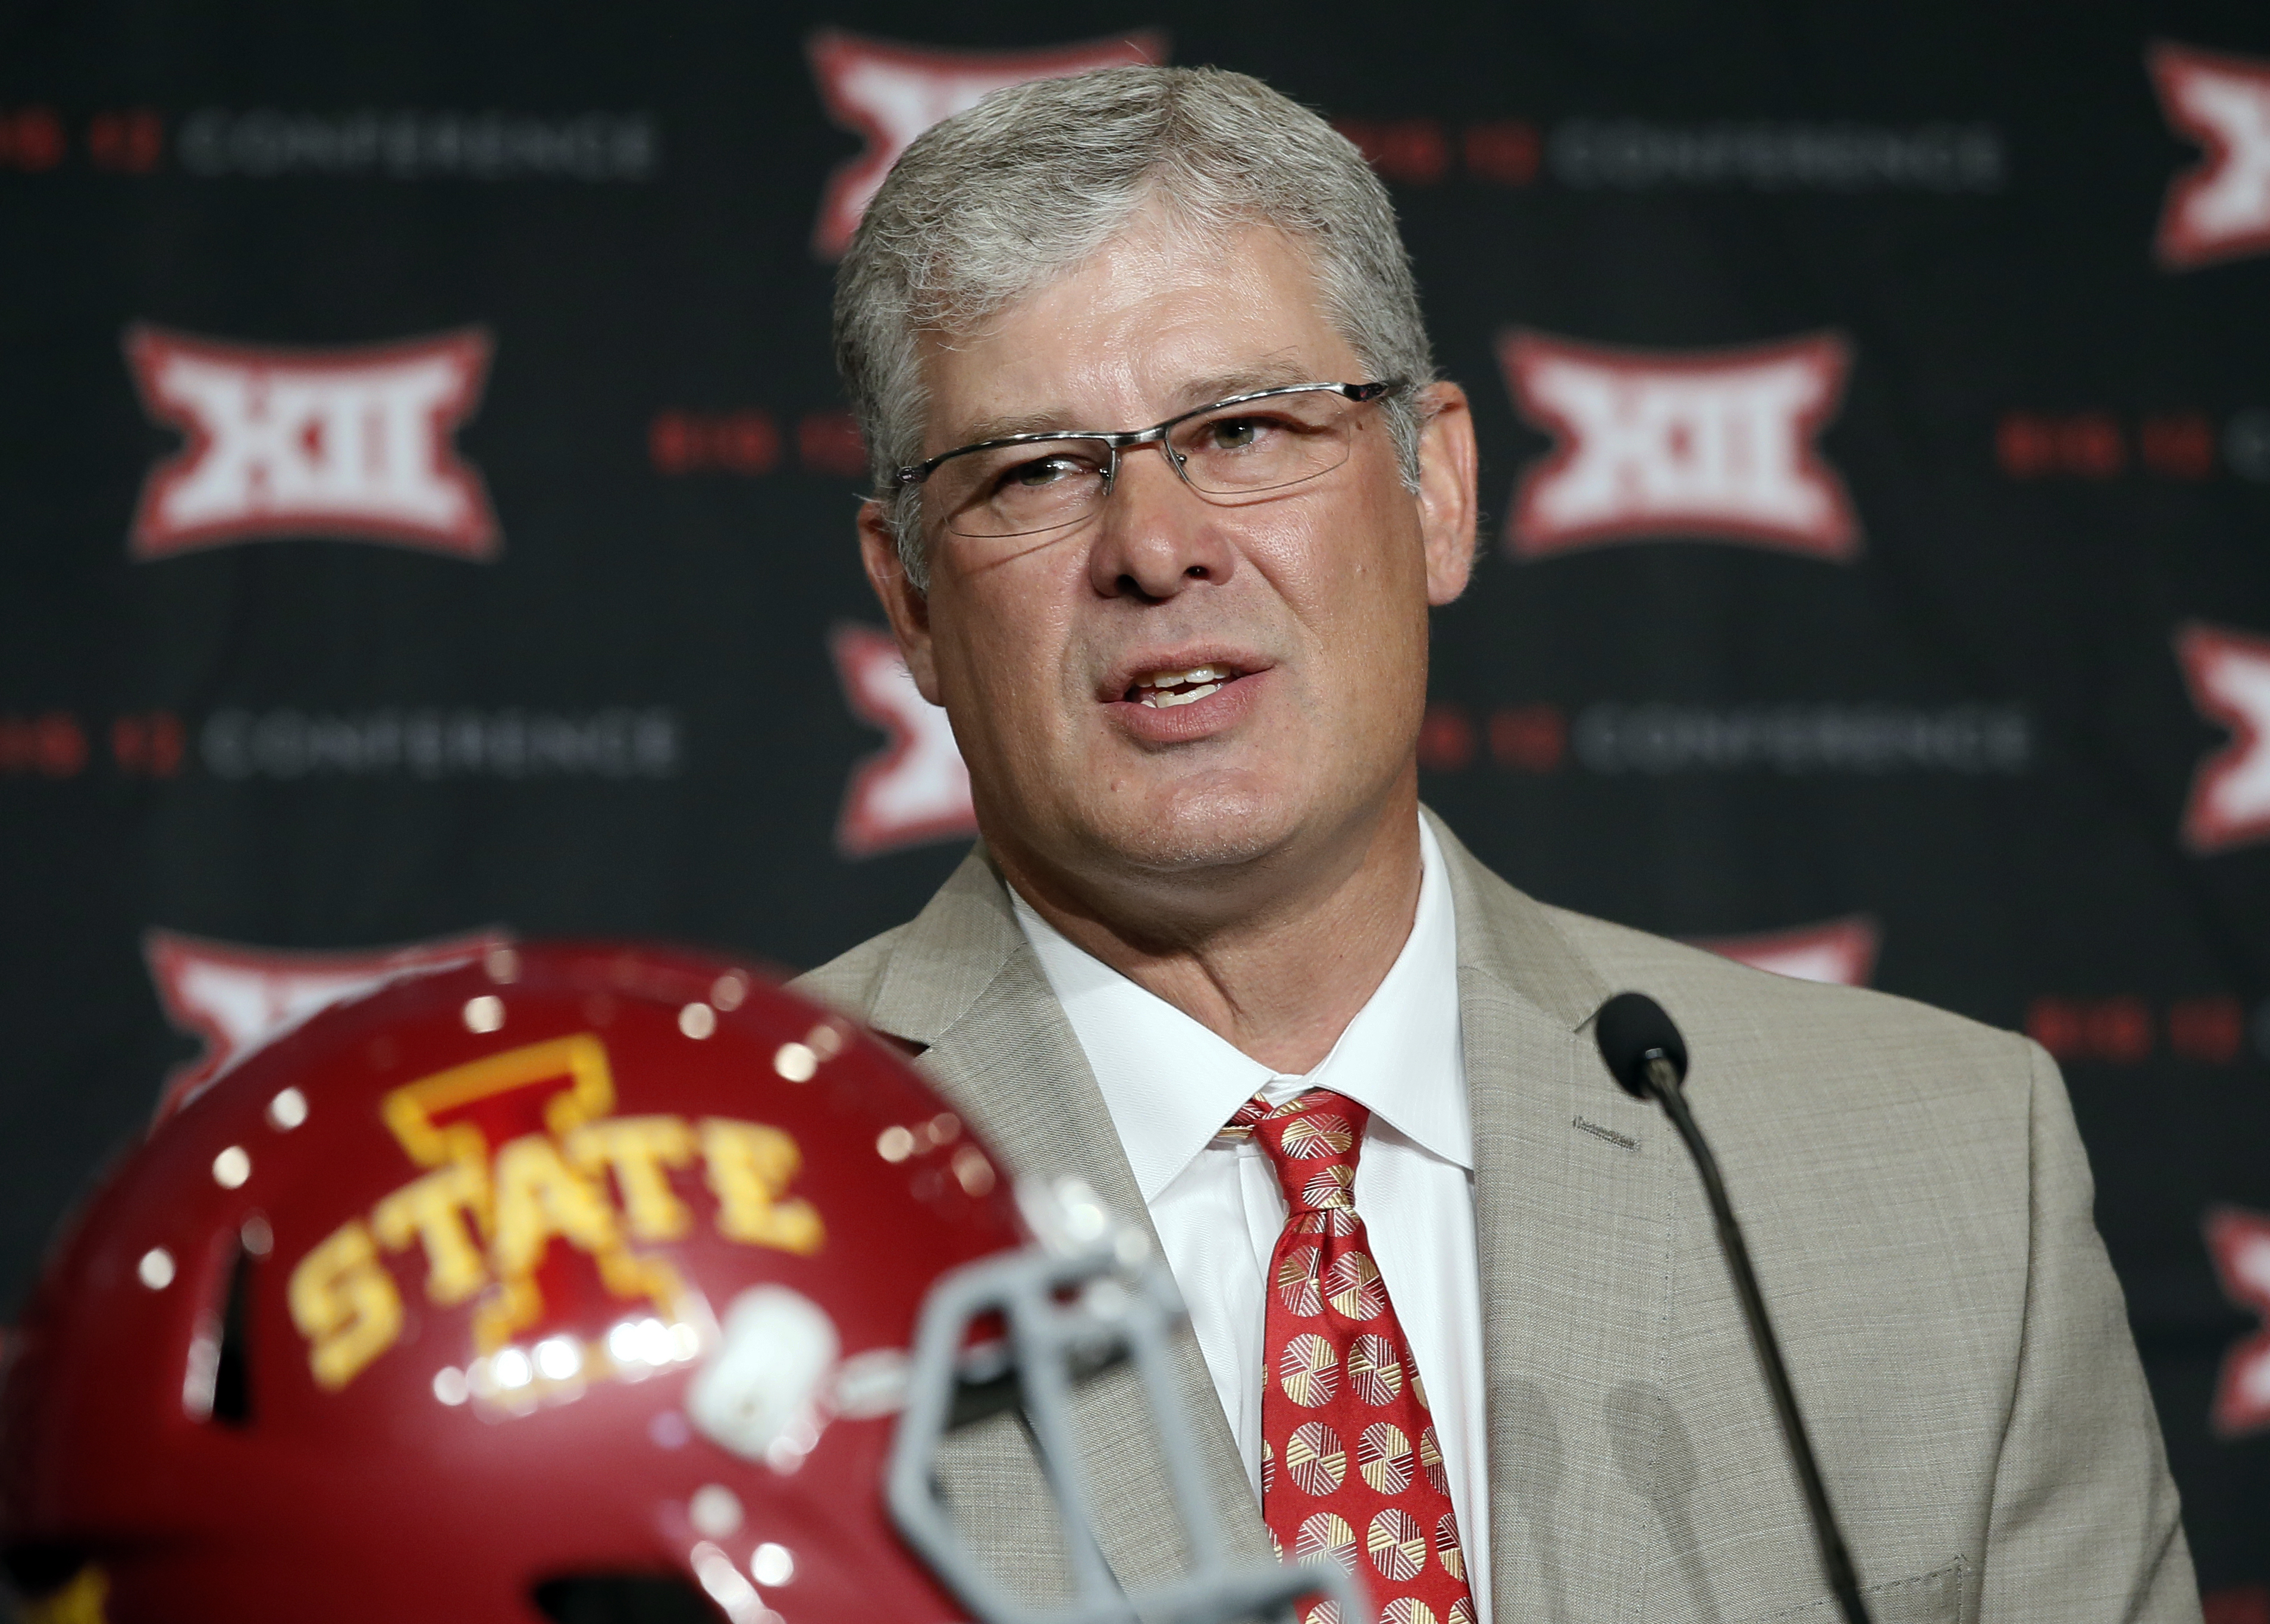 Iowa State head football coach Paul Rhoads addresses attendees at the NCAA college Big 12 Conference Football Media Days Tuesday, July 21, 2015, in Dallas. (AP Photo/Tony Gutierrez)